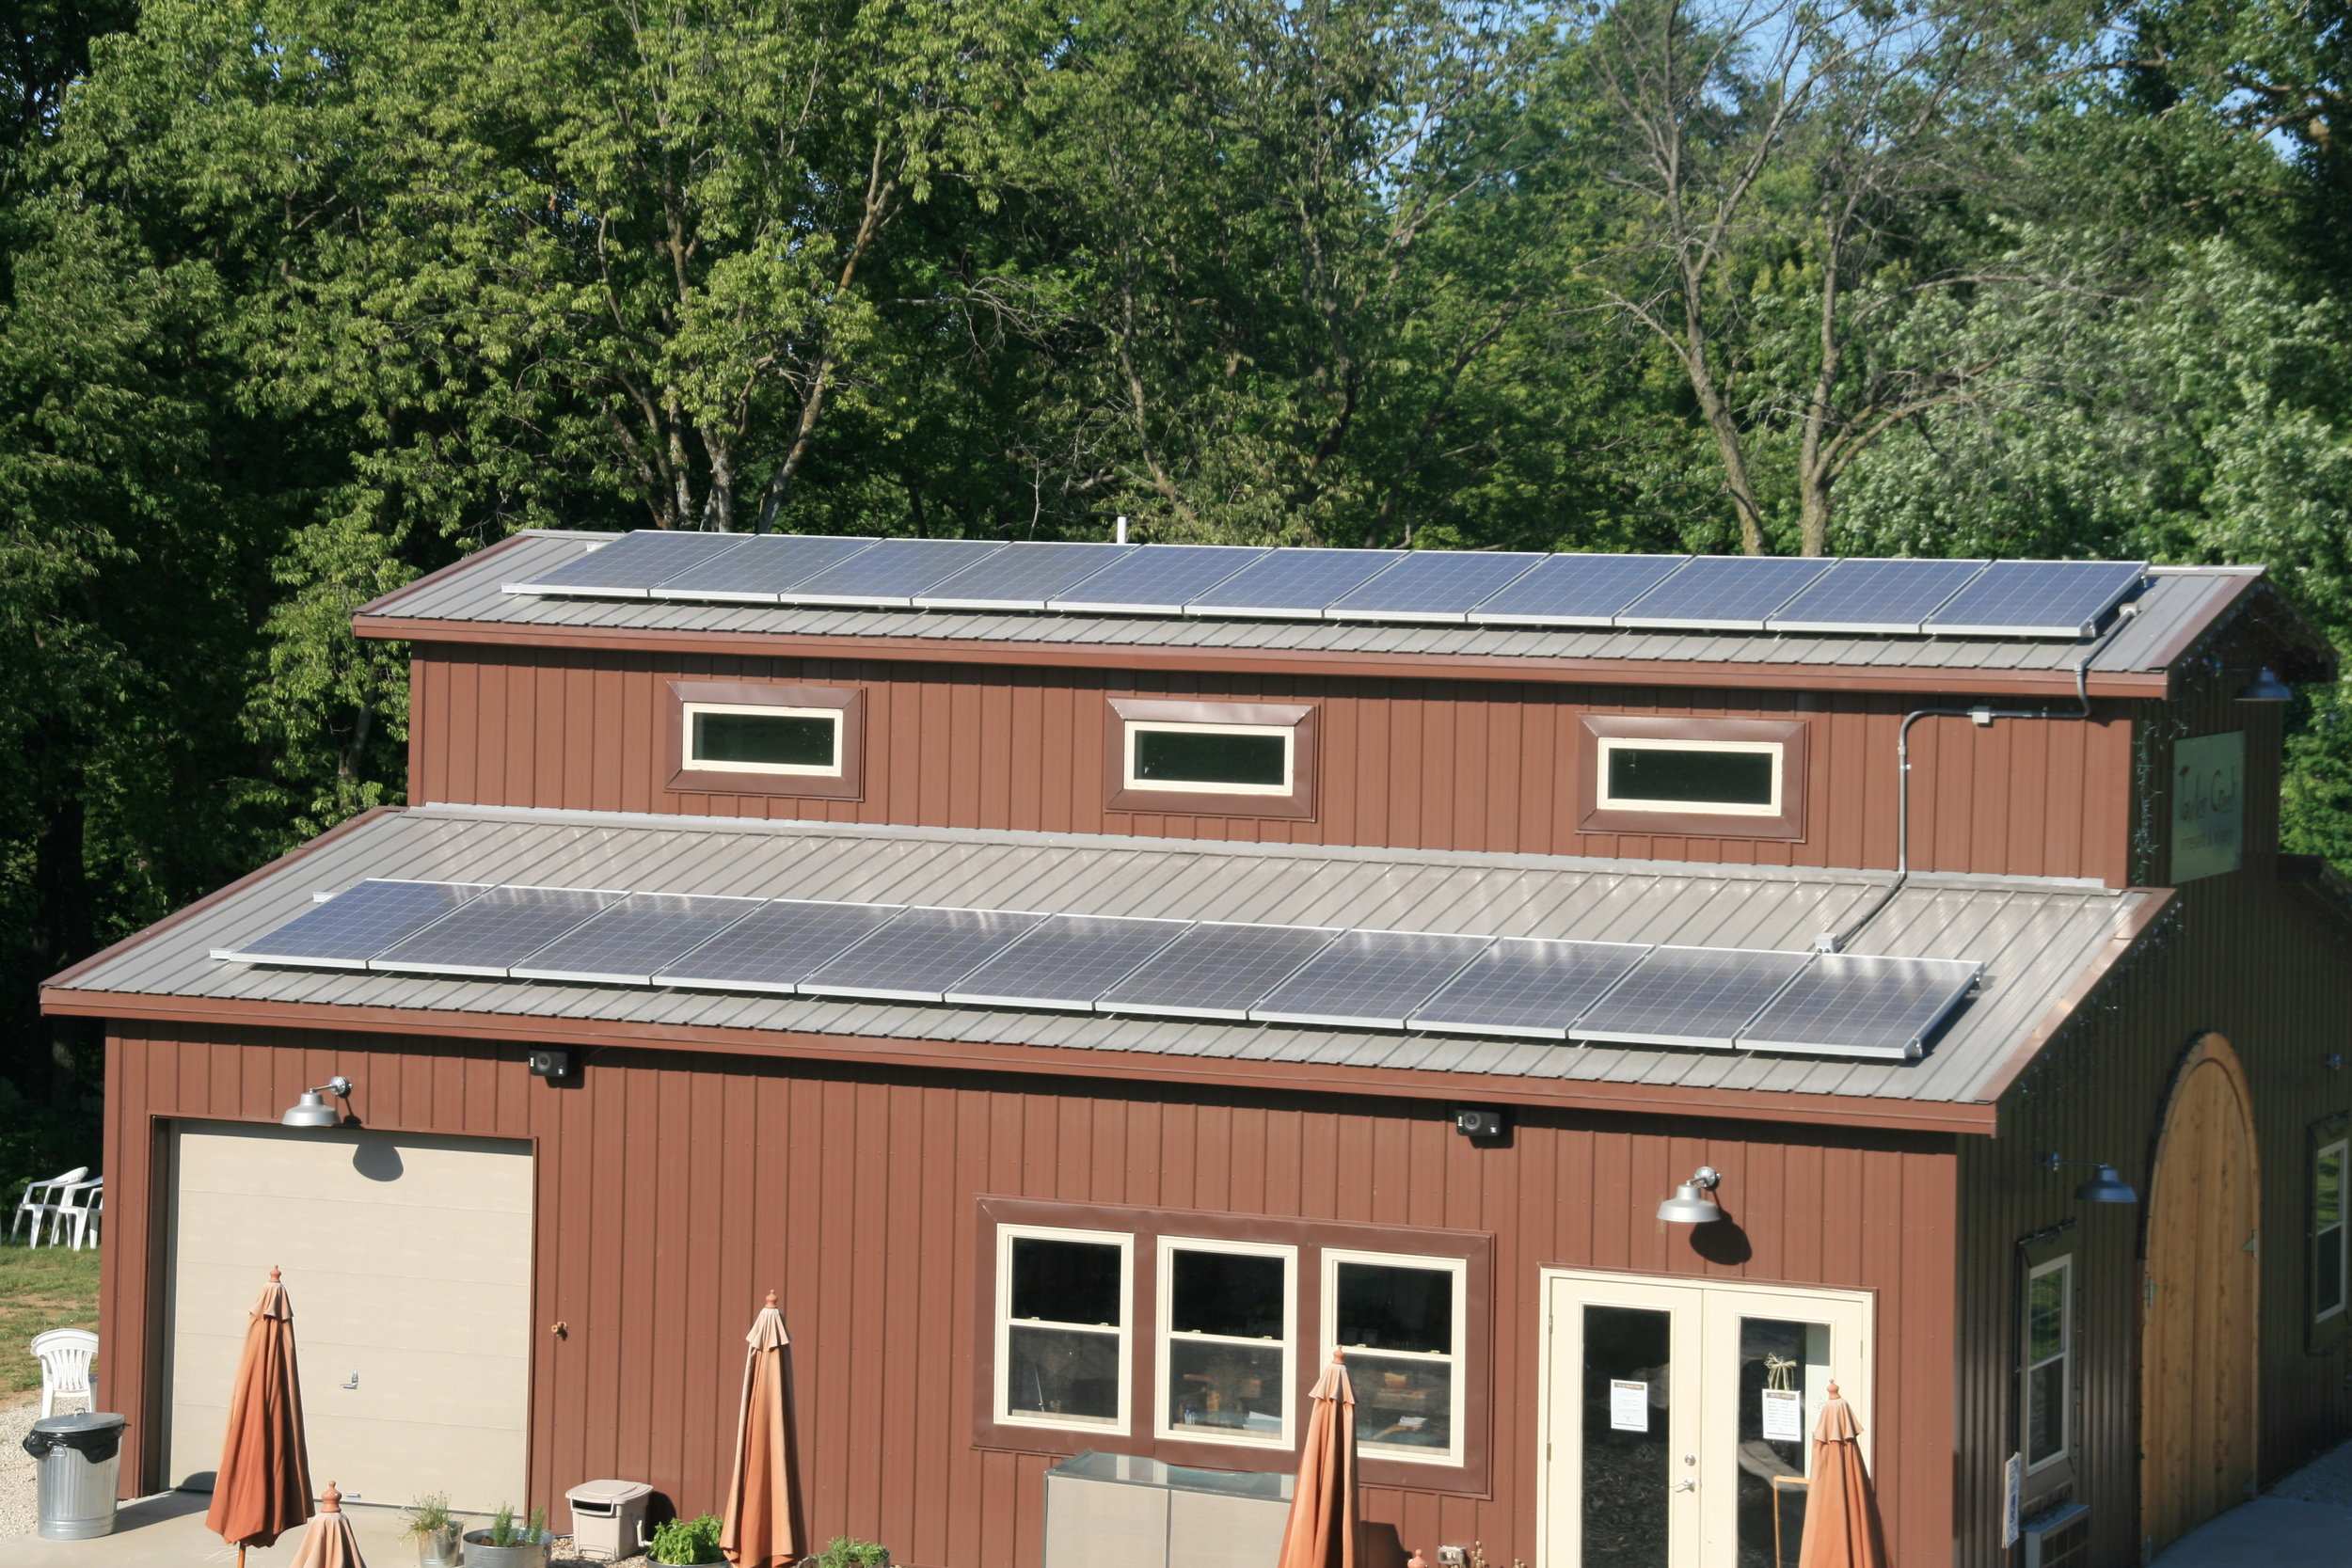 jowler-creek-sustainable-winery-solar-power.JPG